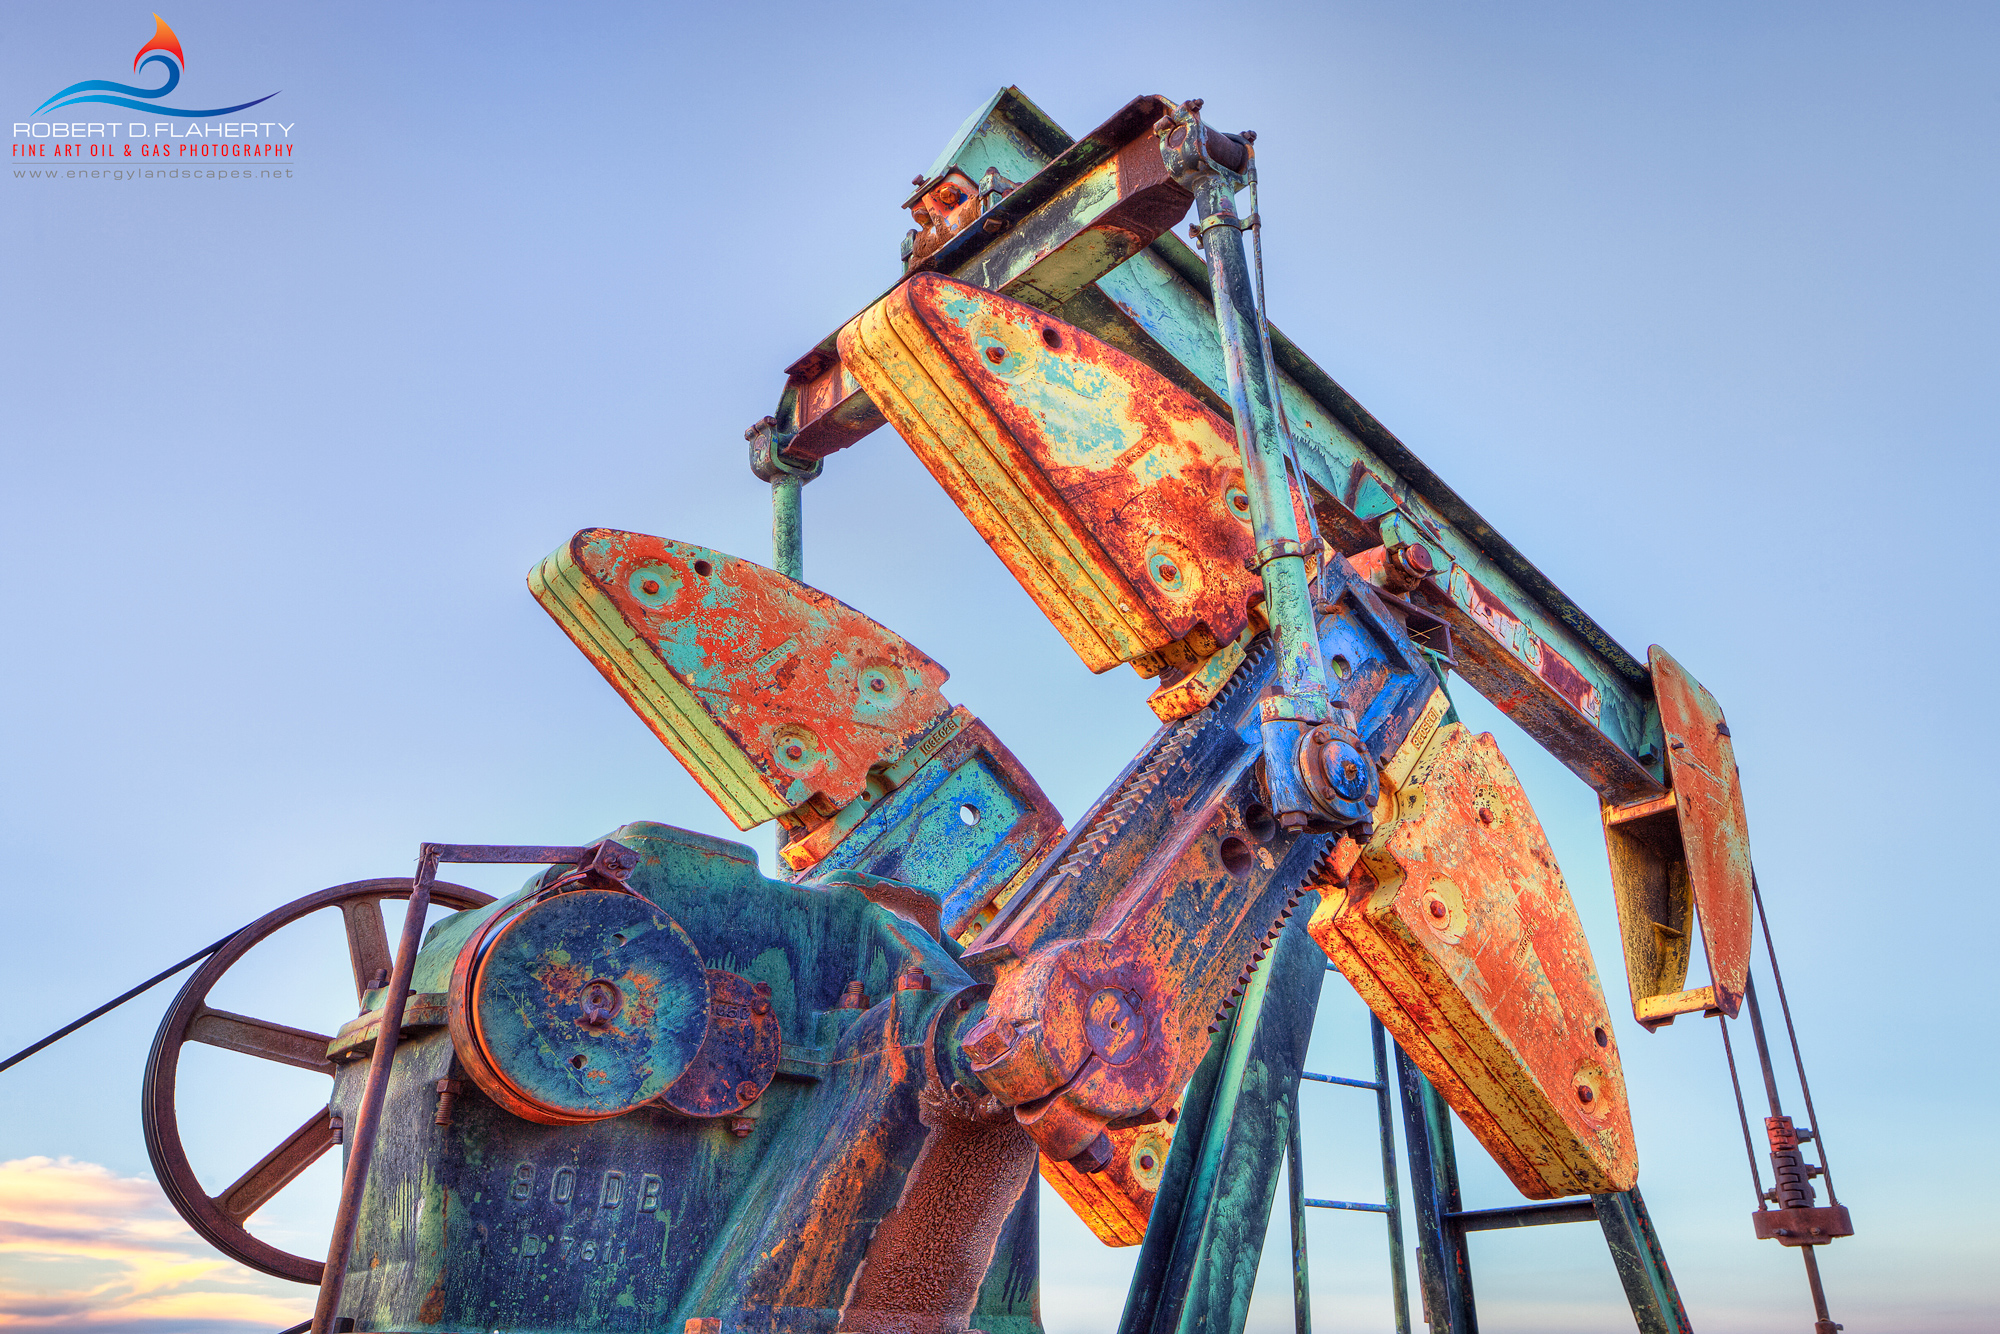 New Mexico, High Plains of Eastern New Mexico, pumpjack, pumpjack art, pump jack, Oil and Gas Photography, Fine Art,  pumping unit, oilfield art, photo